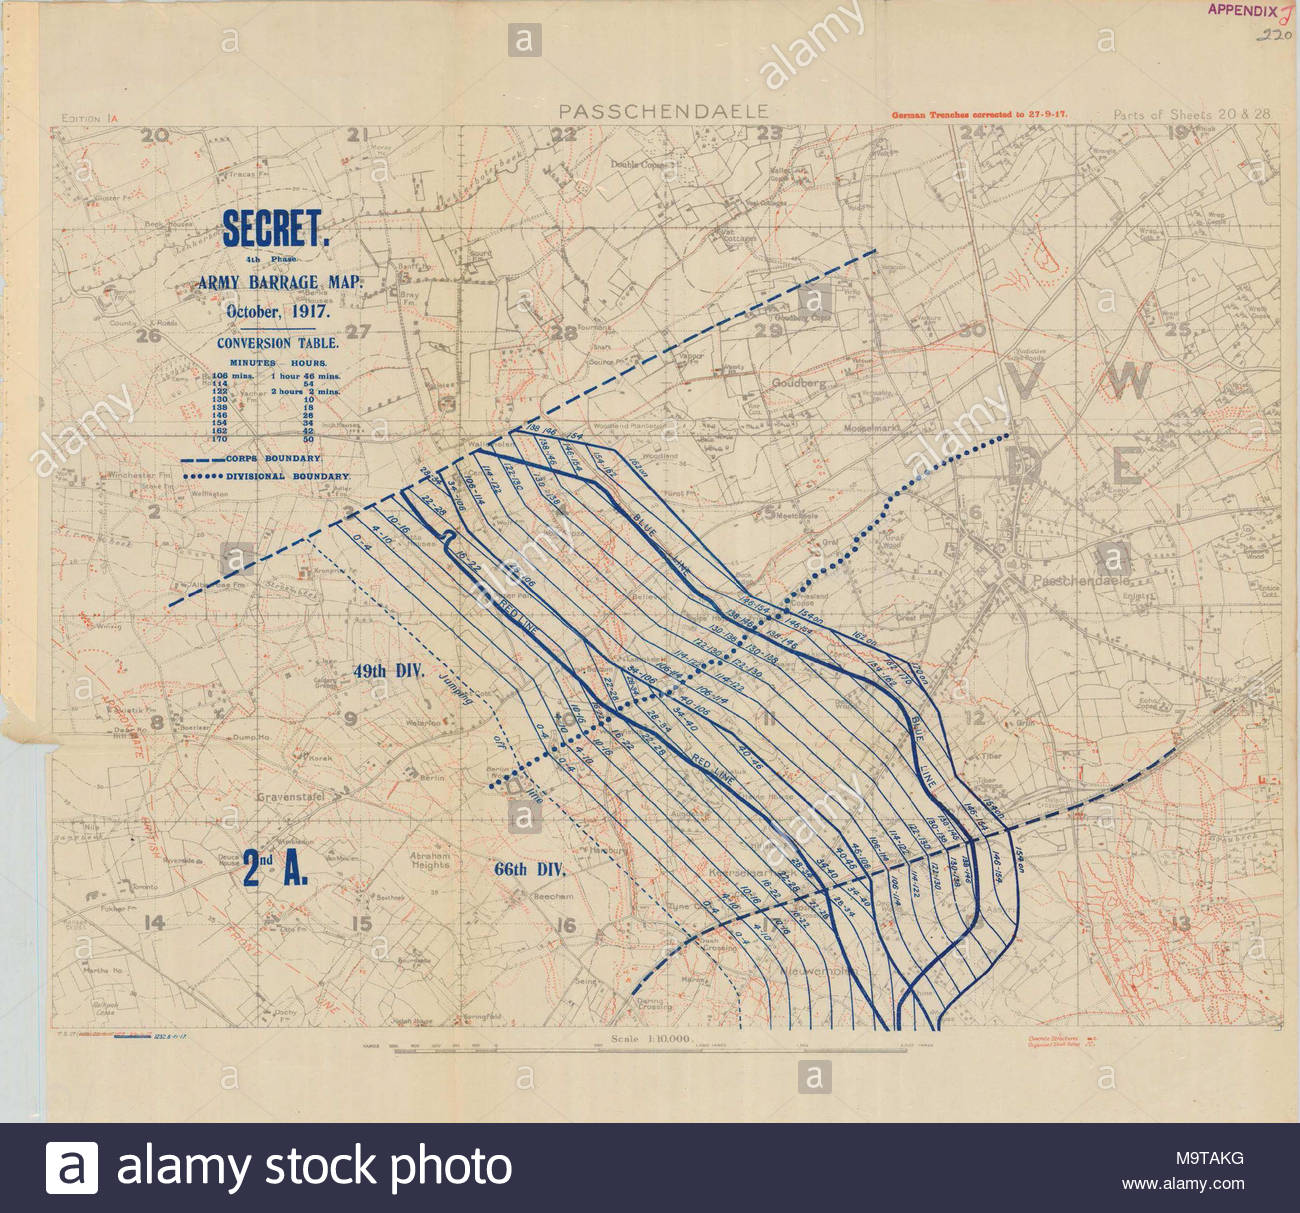 hight resolution of 1 10000 scame artillery barrage map for battle of ii anzac corps at the